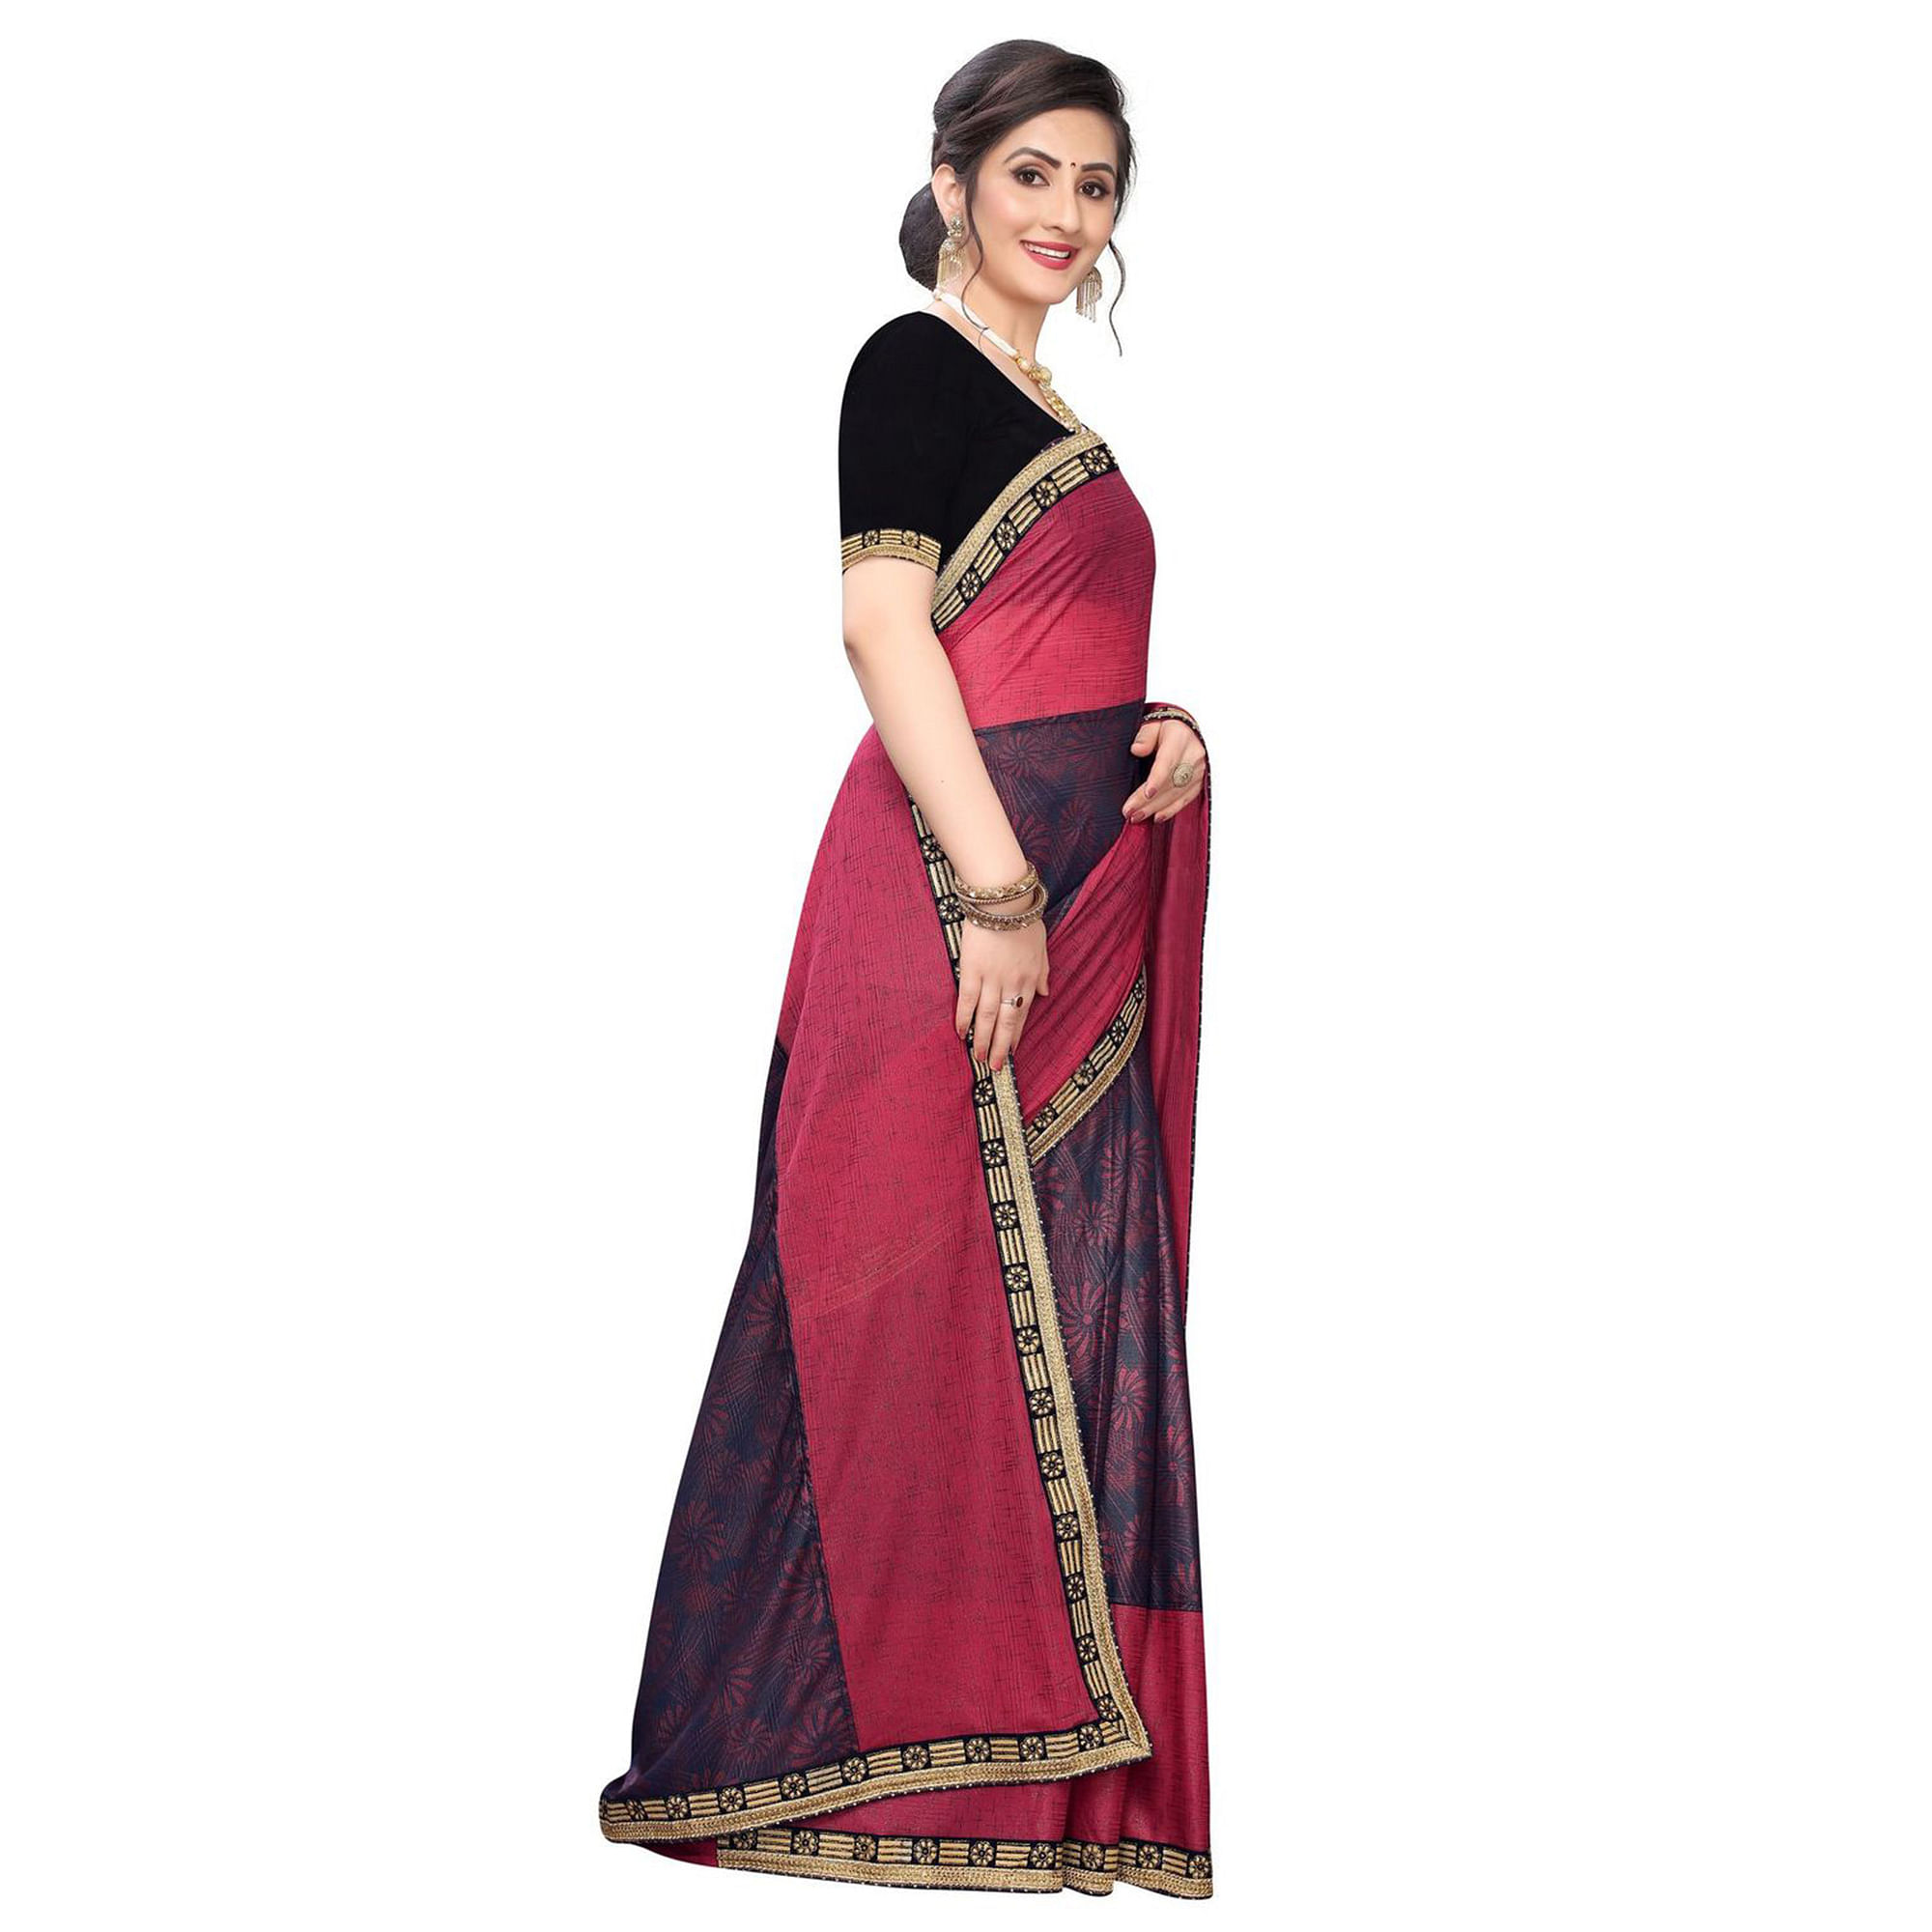 Captivating Pink Colored Party Wear Printed Lycra Blend Saree